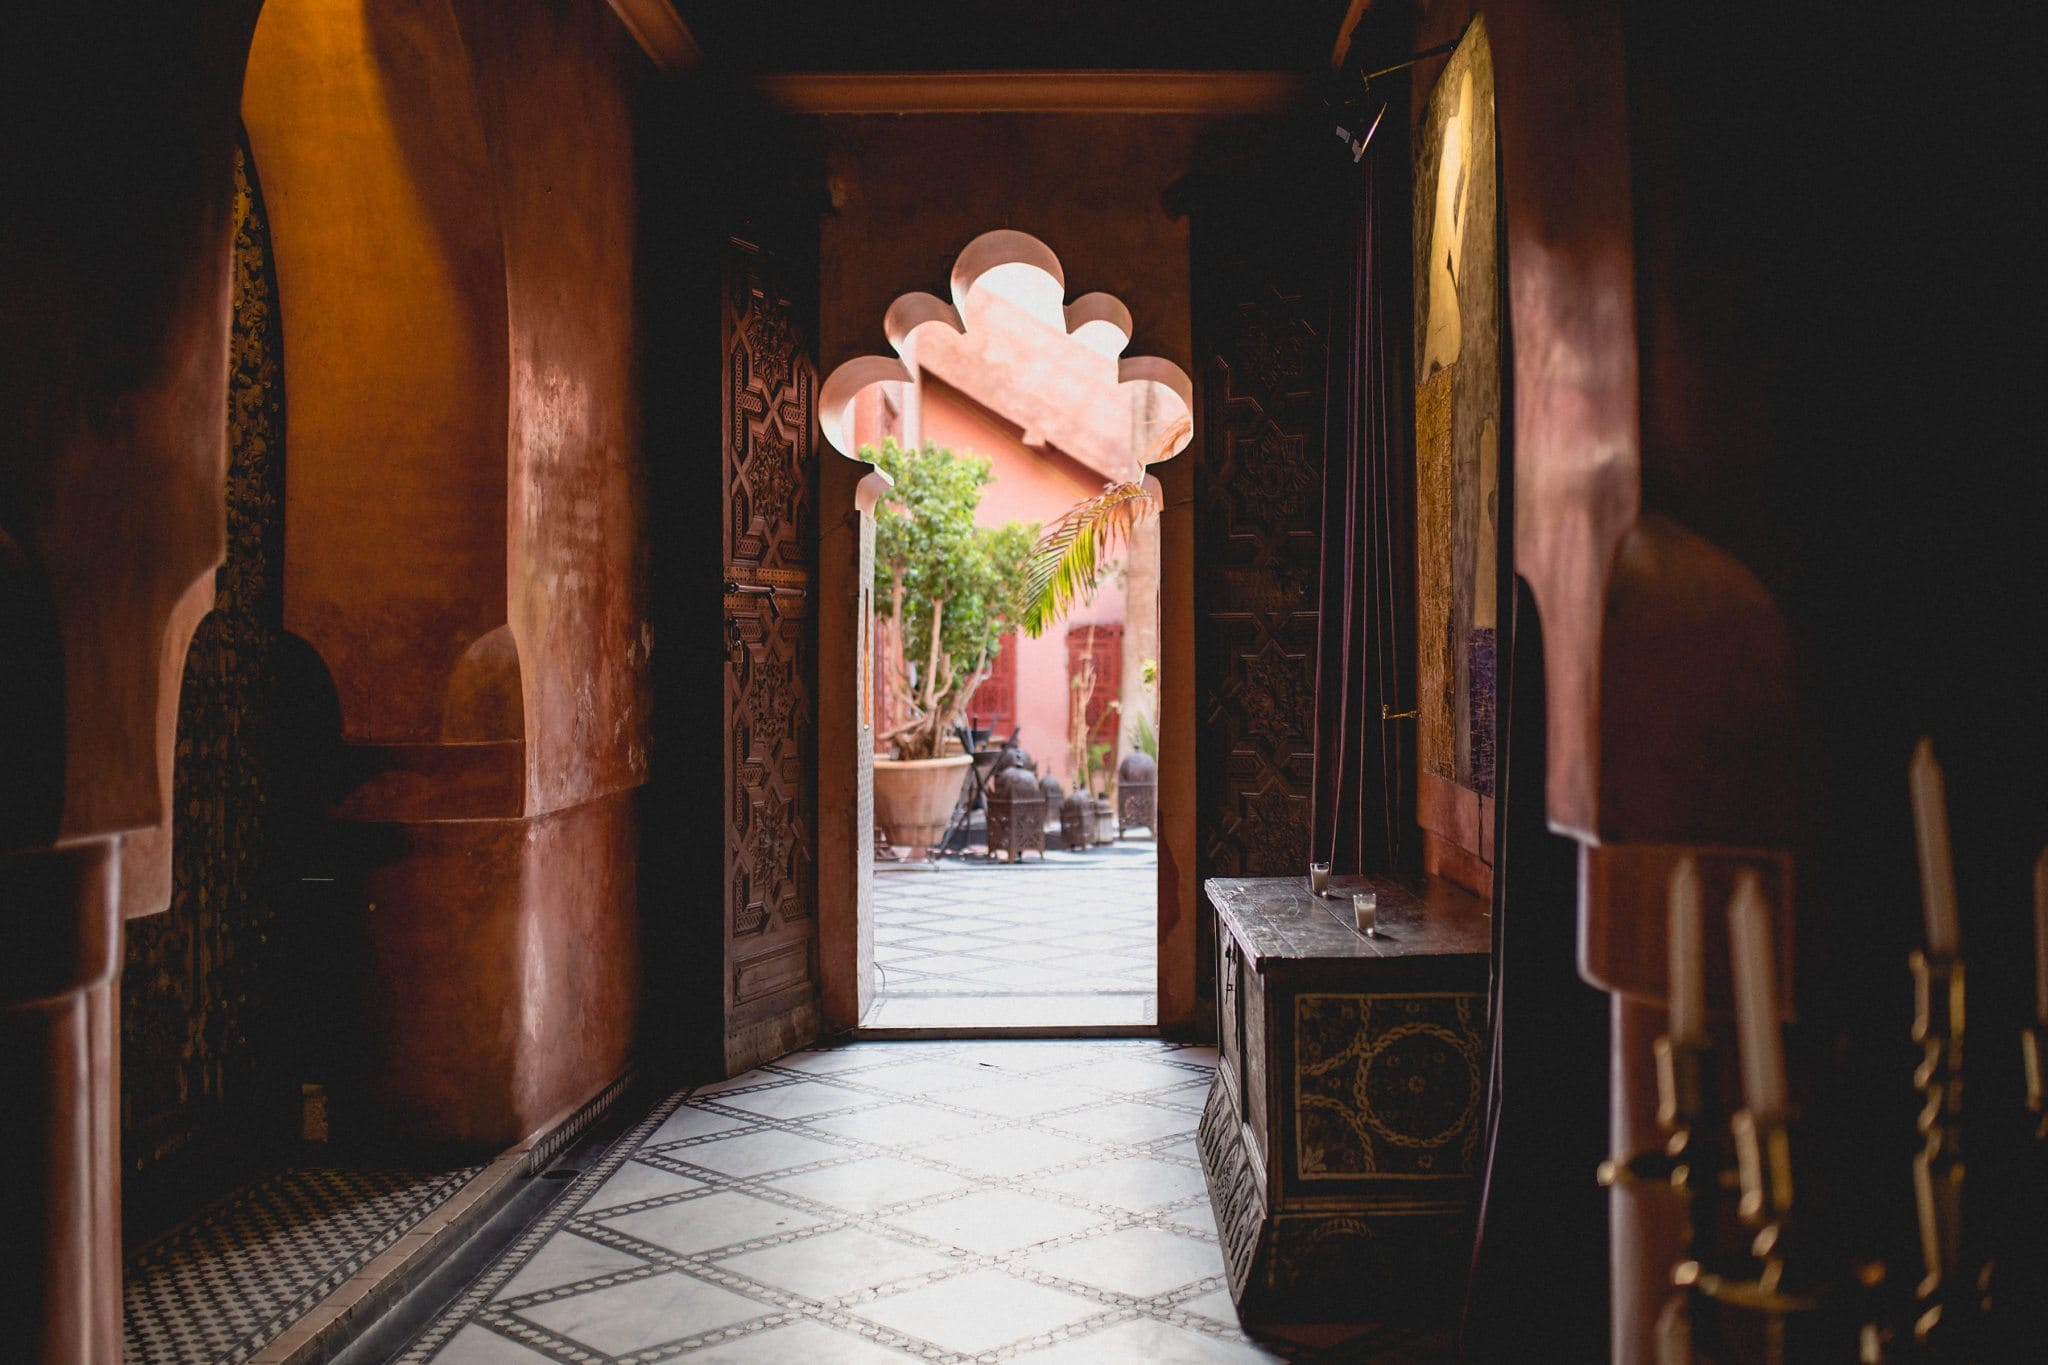 Through the archway to Restaurant Palais Soleiman in Marrakech